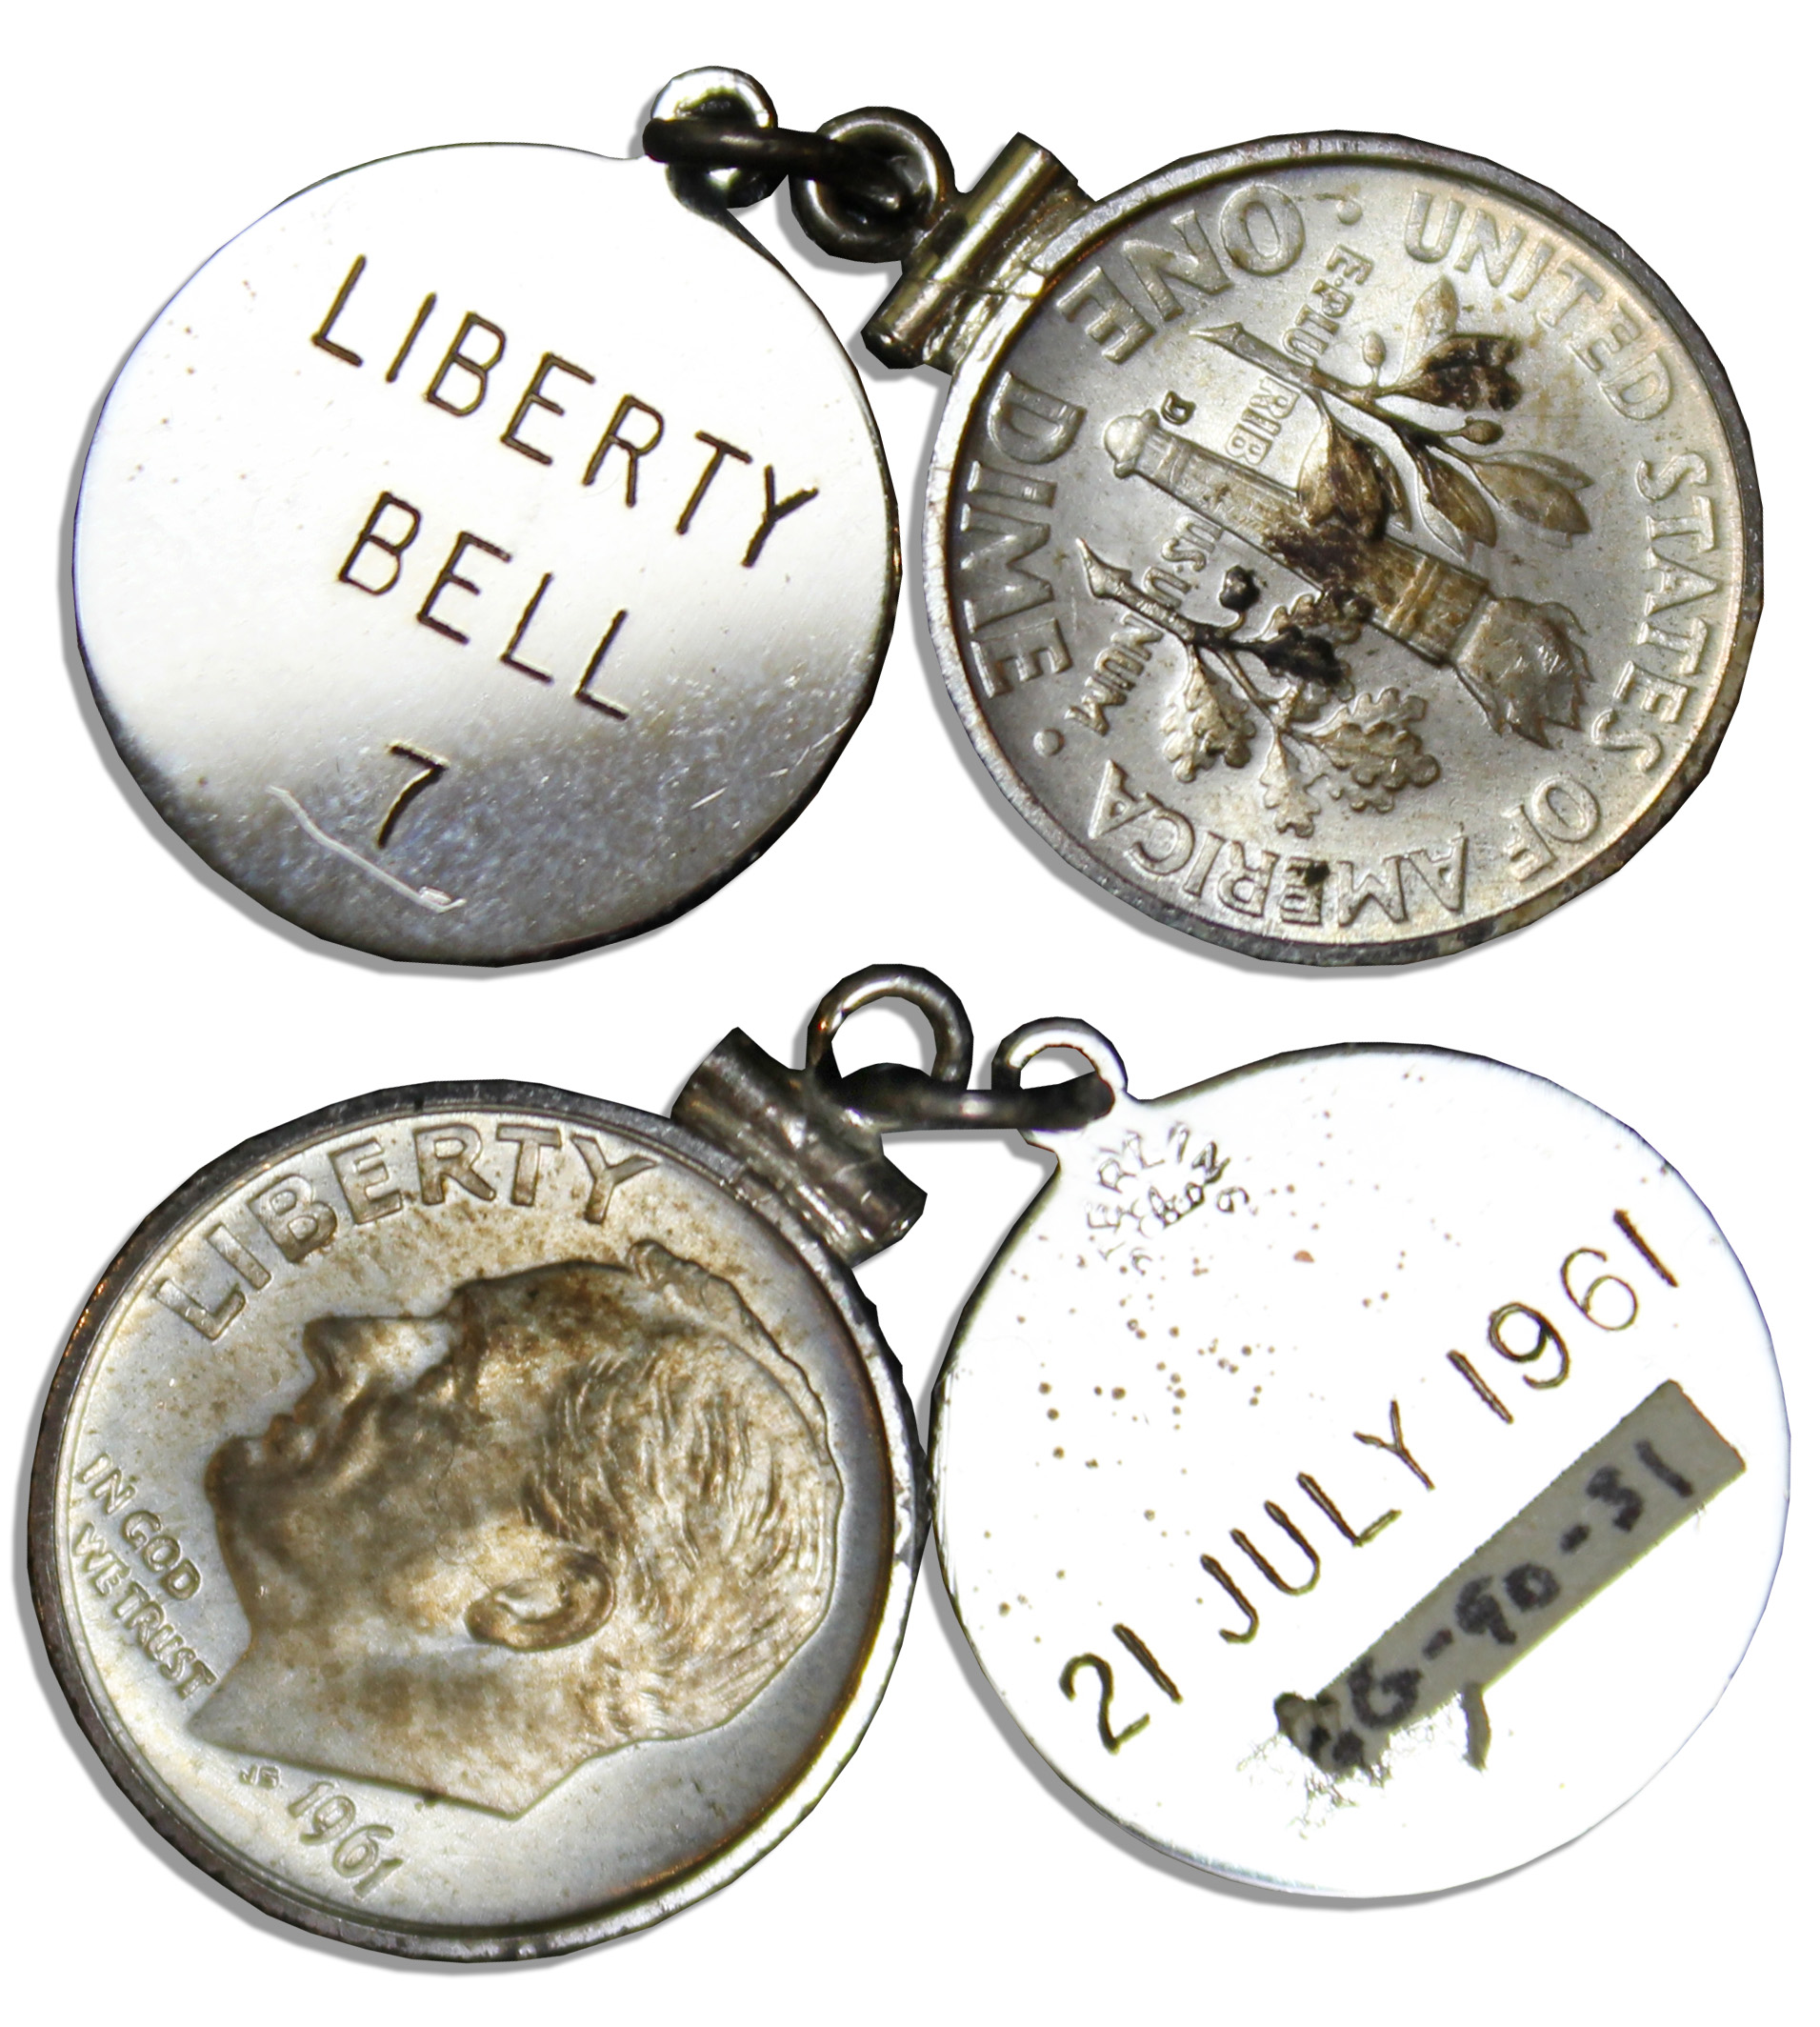 Liberty Bell 7 Space flown dime